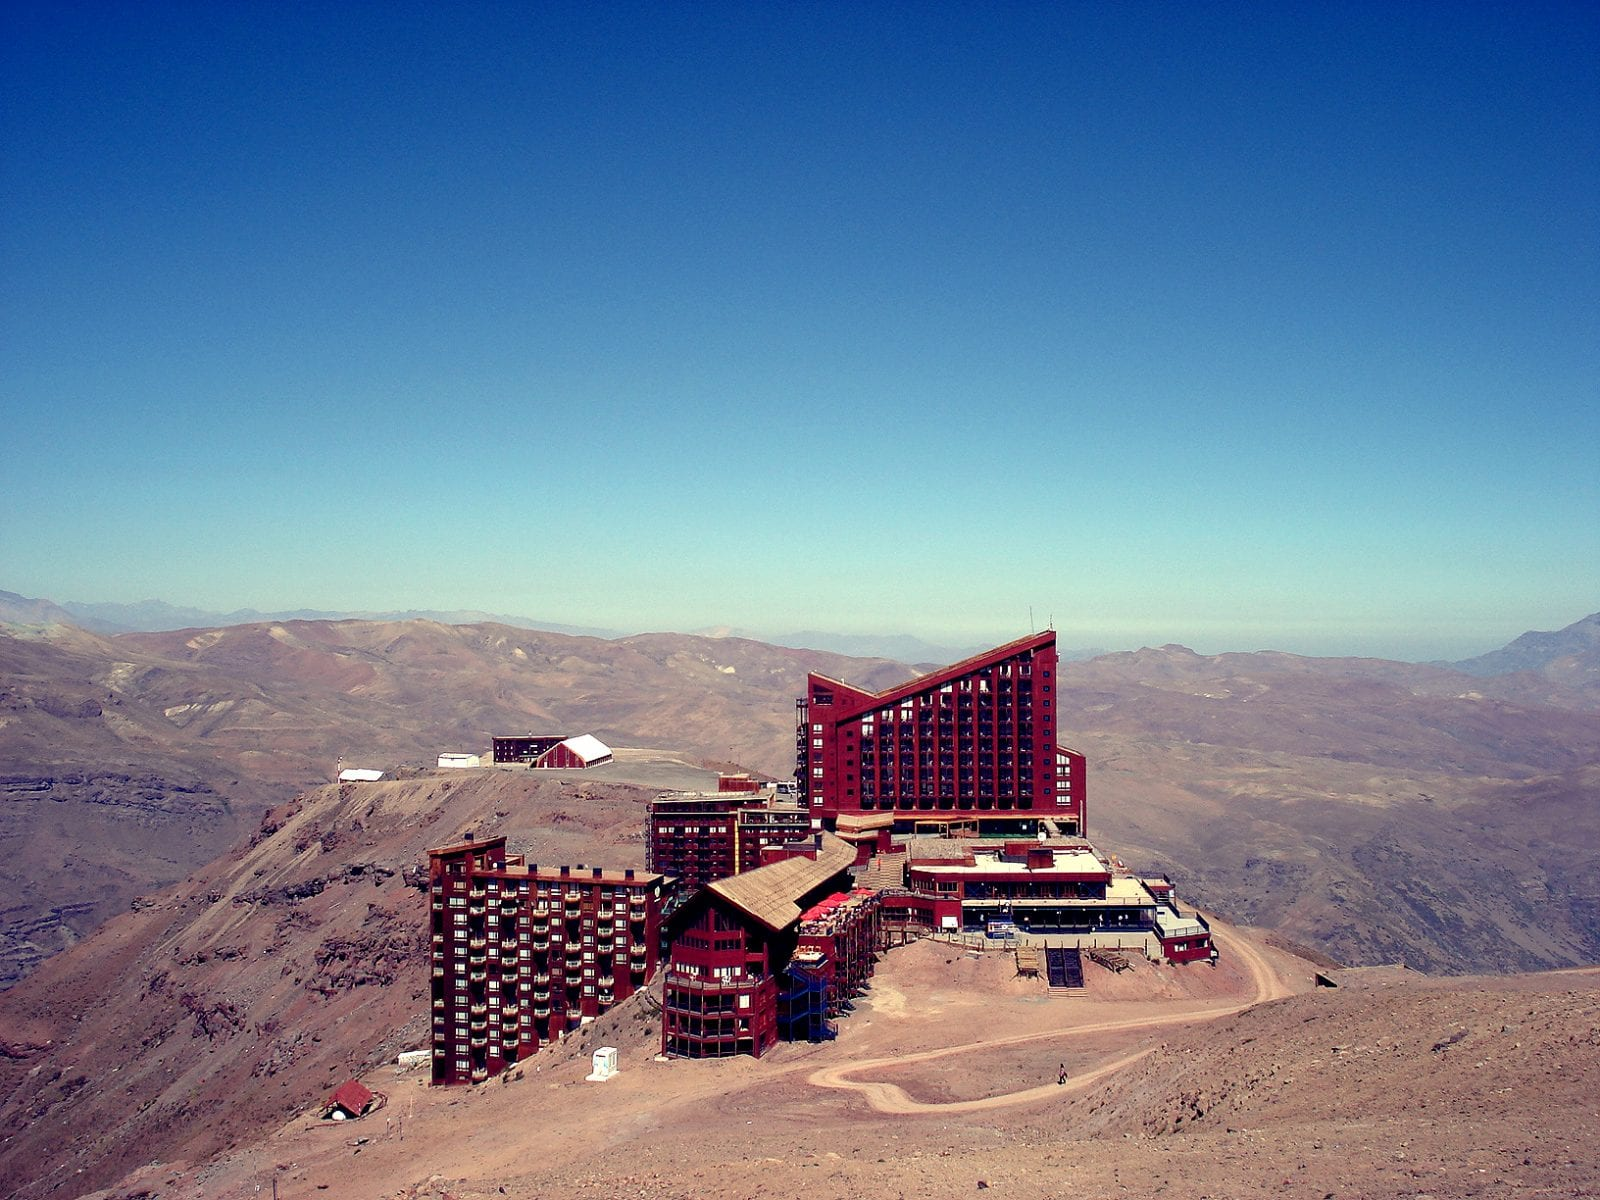 Hotel Valle Nevado in Andes, Chile